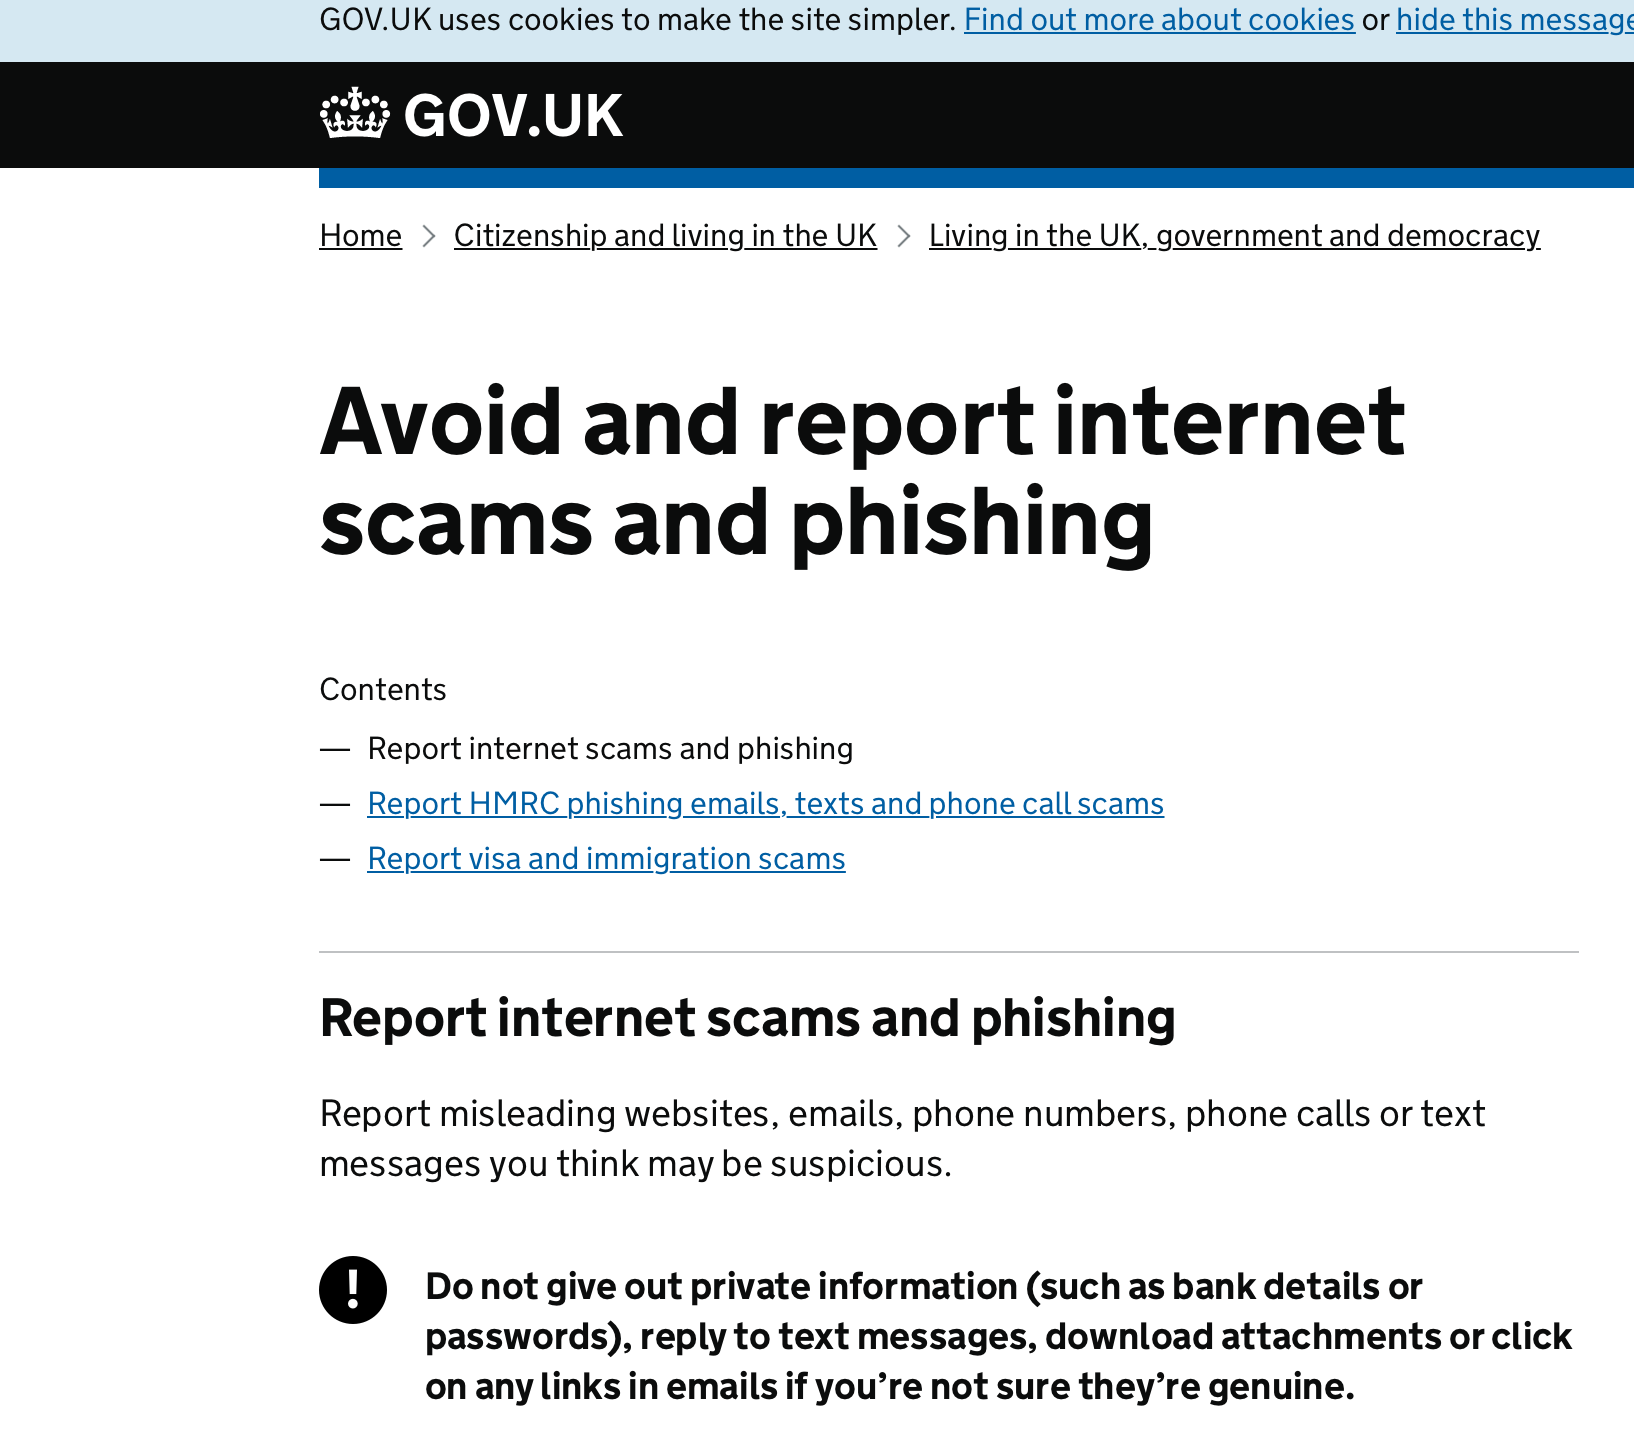 UK Government scam site advice